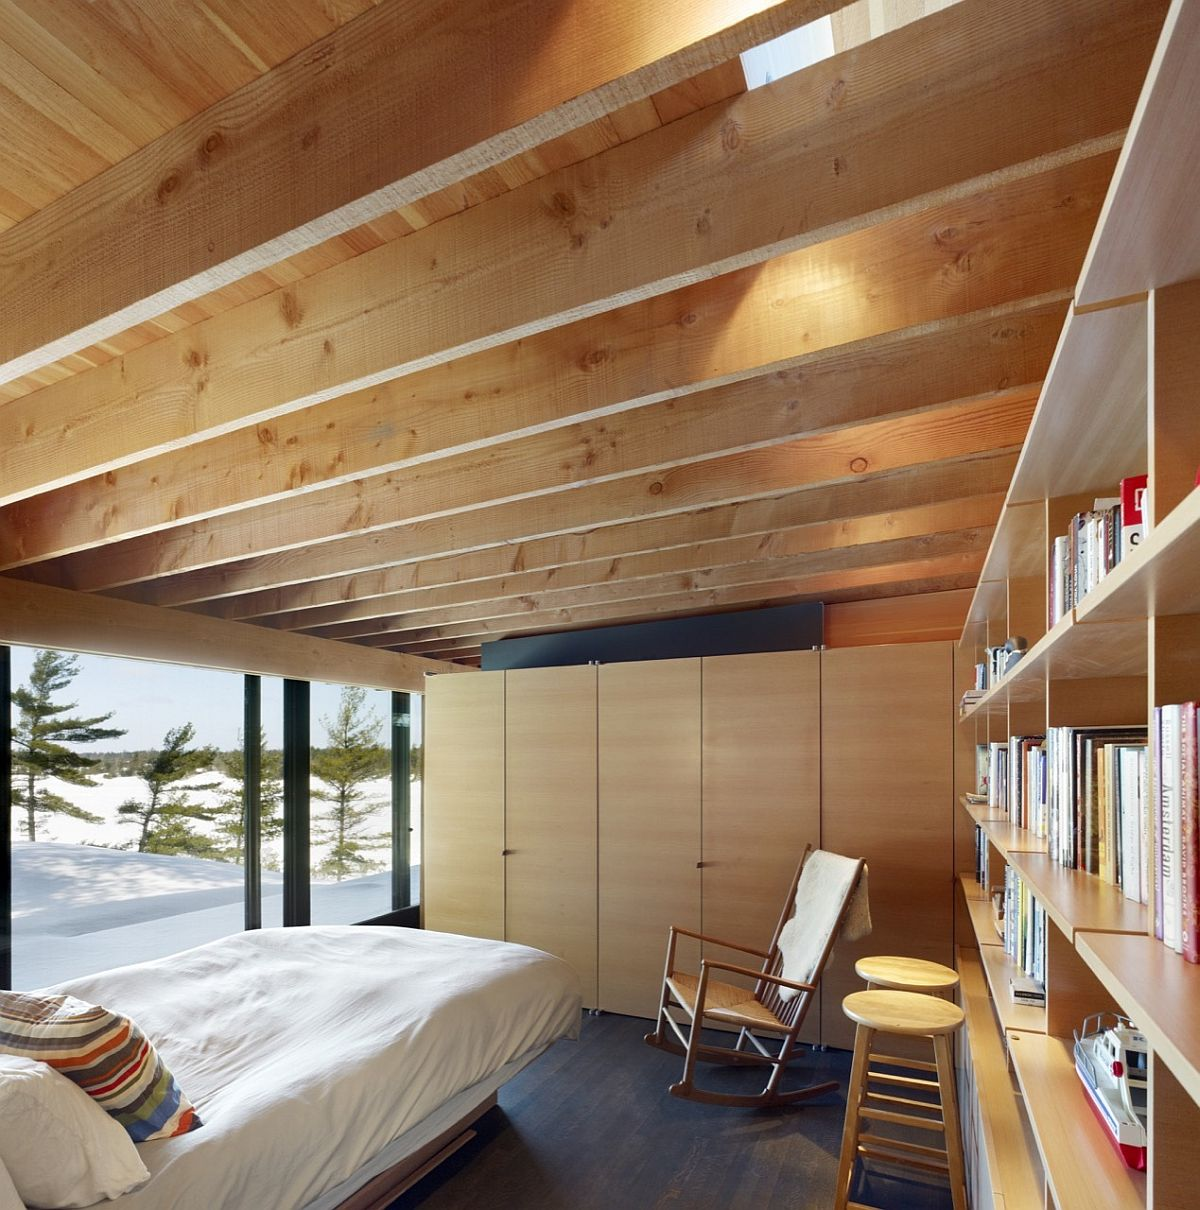 Rough-sawn fir gives the bedrooms a warm, cozy ambiance